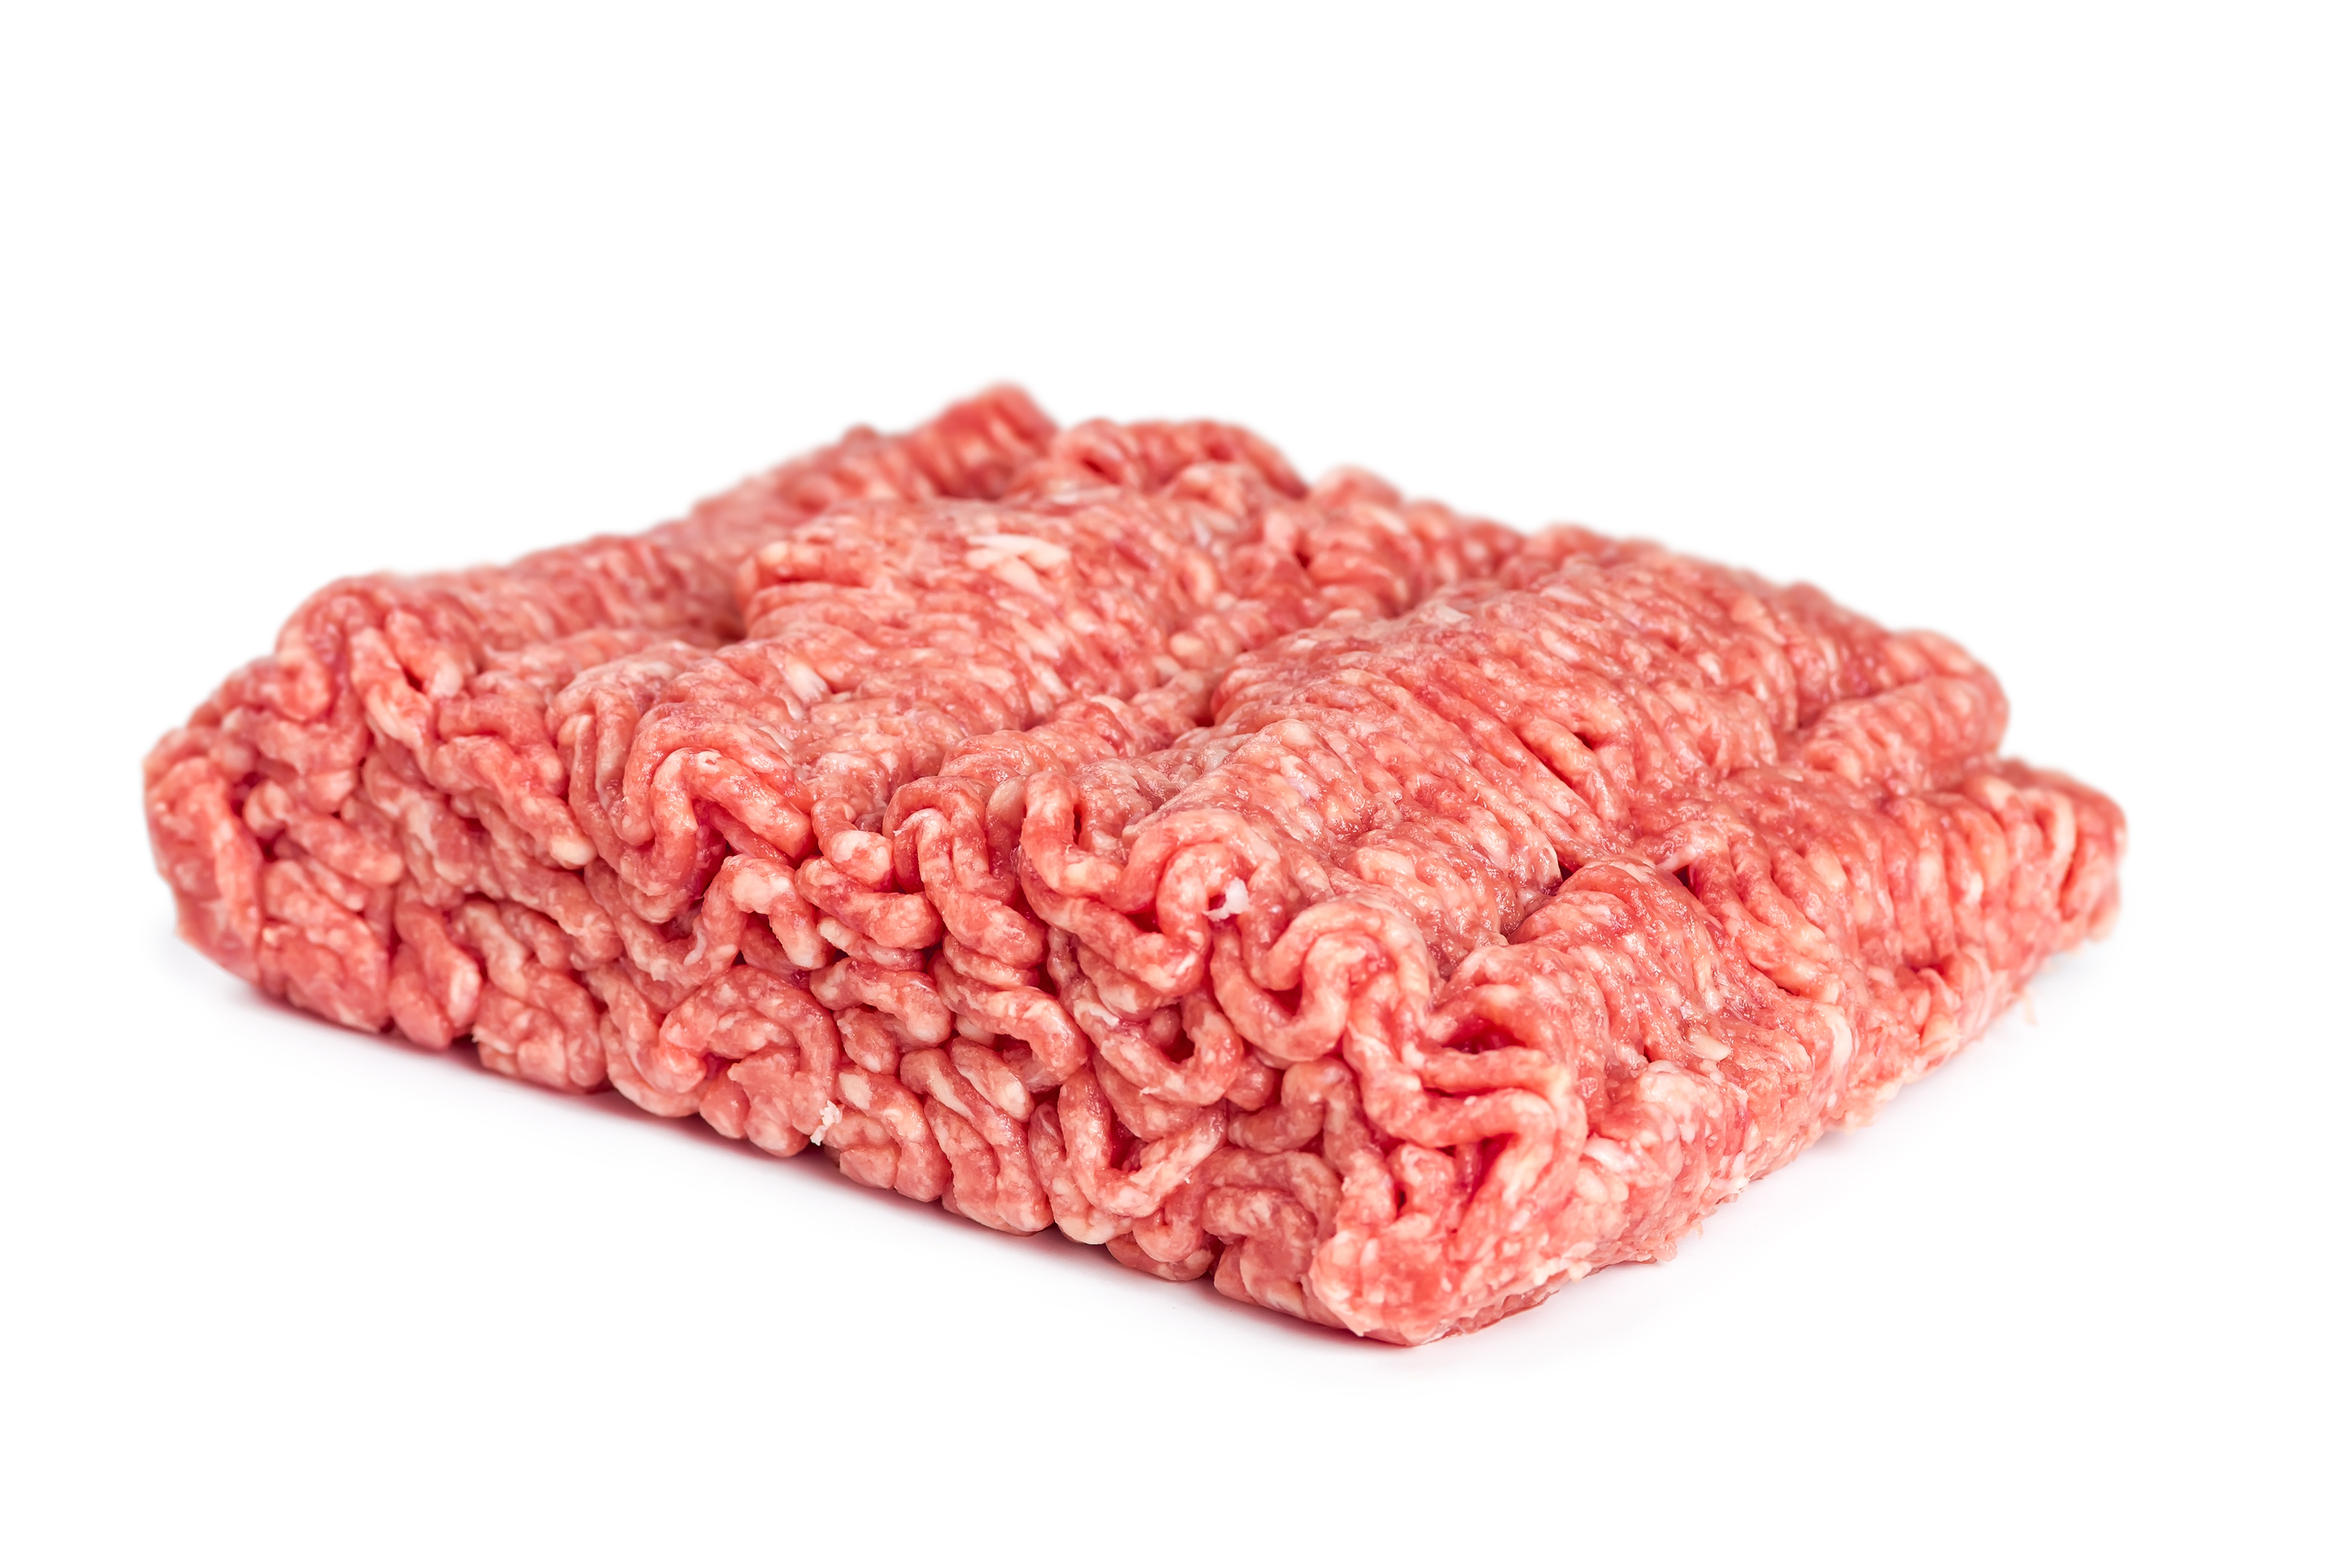 Pork And Beef Mince.jpg